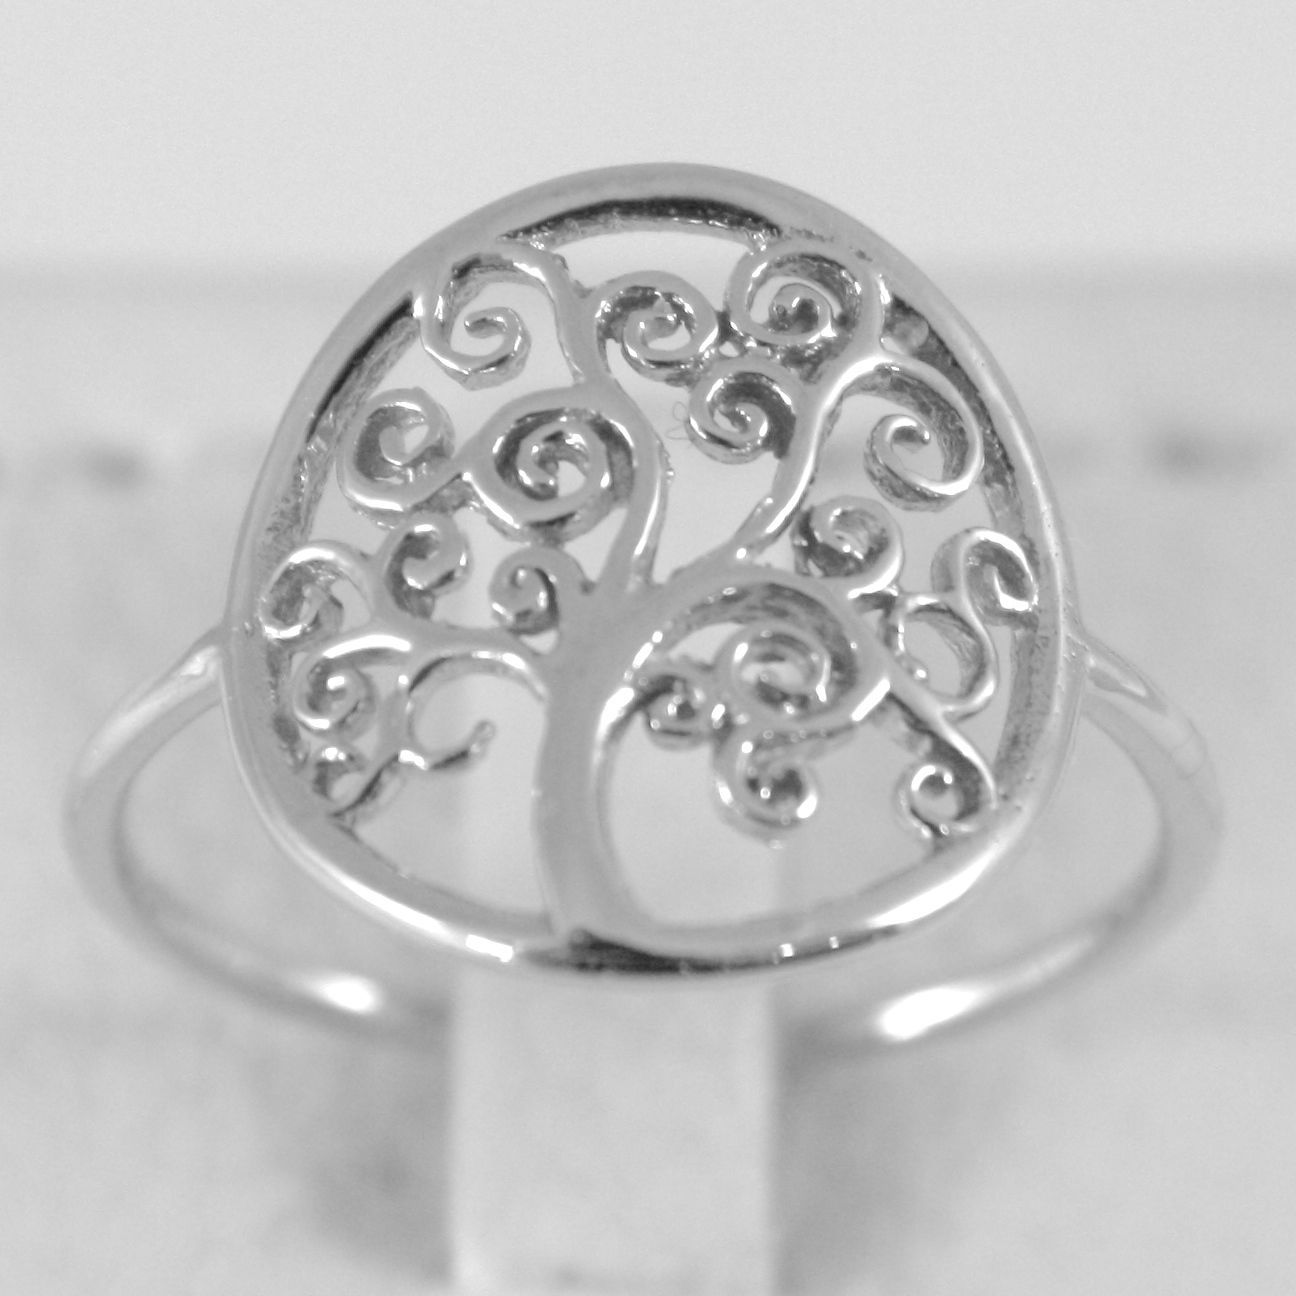 White Gold Ring 750 18k with Tree of Life, Circle, Made in Italy